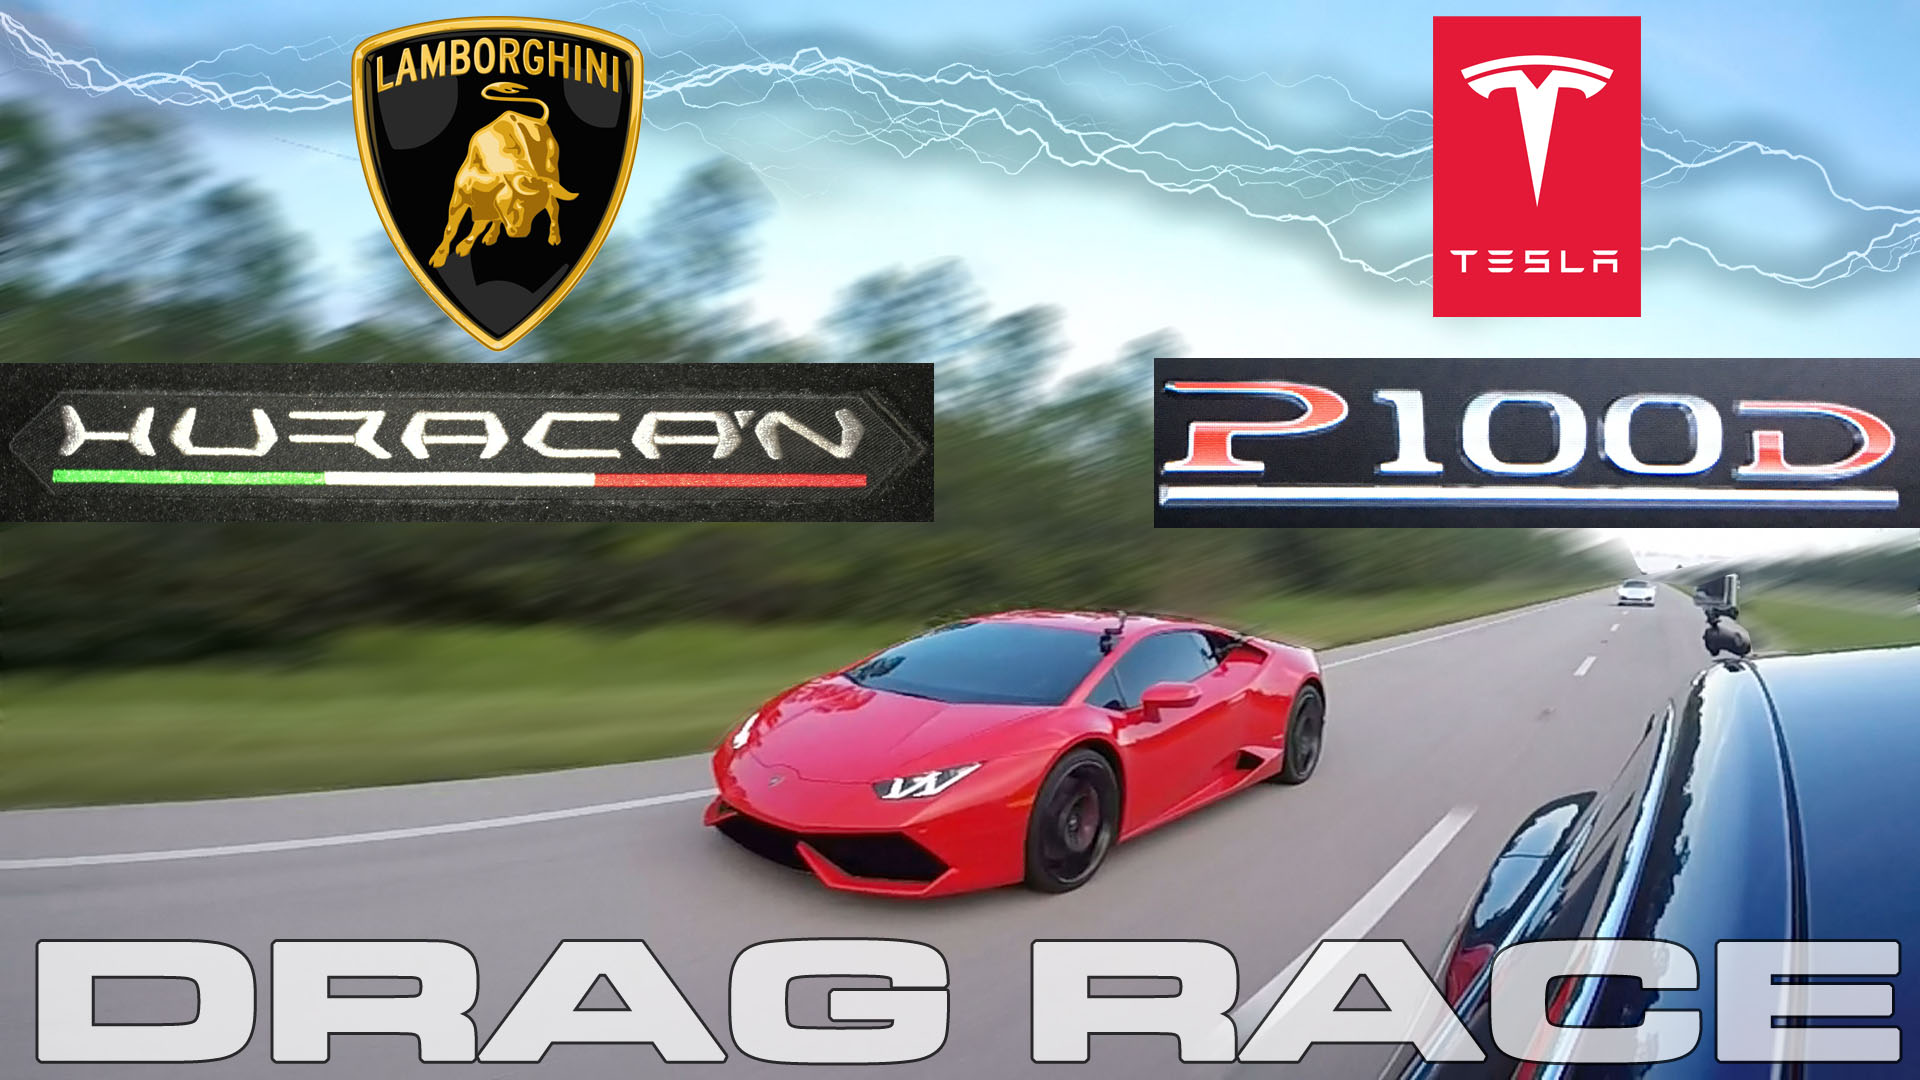 Tesla Model S P100D takes on a Lamborghini Huracan LP610-4 in a Drag Race